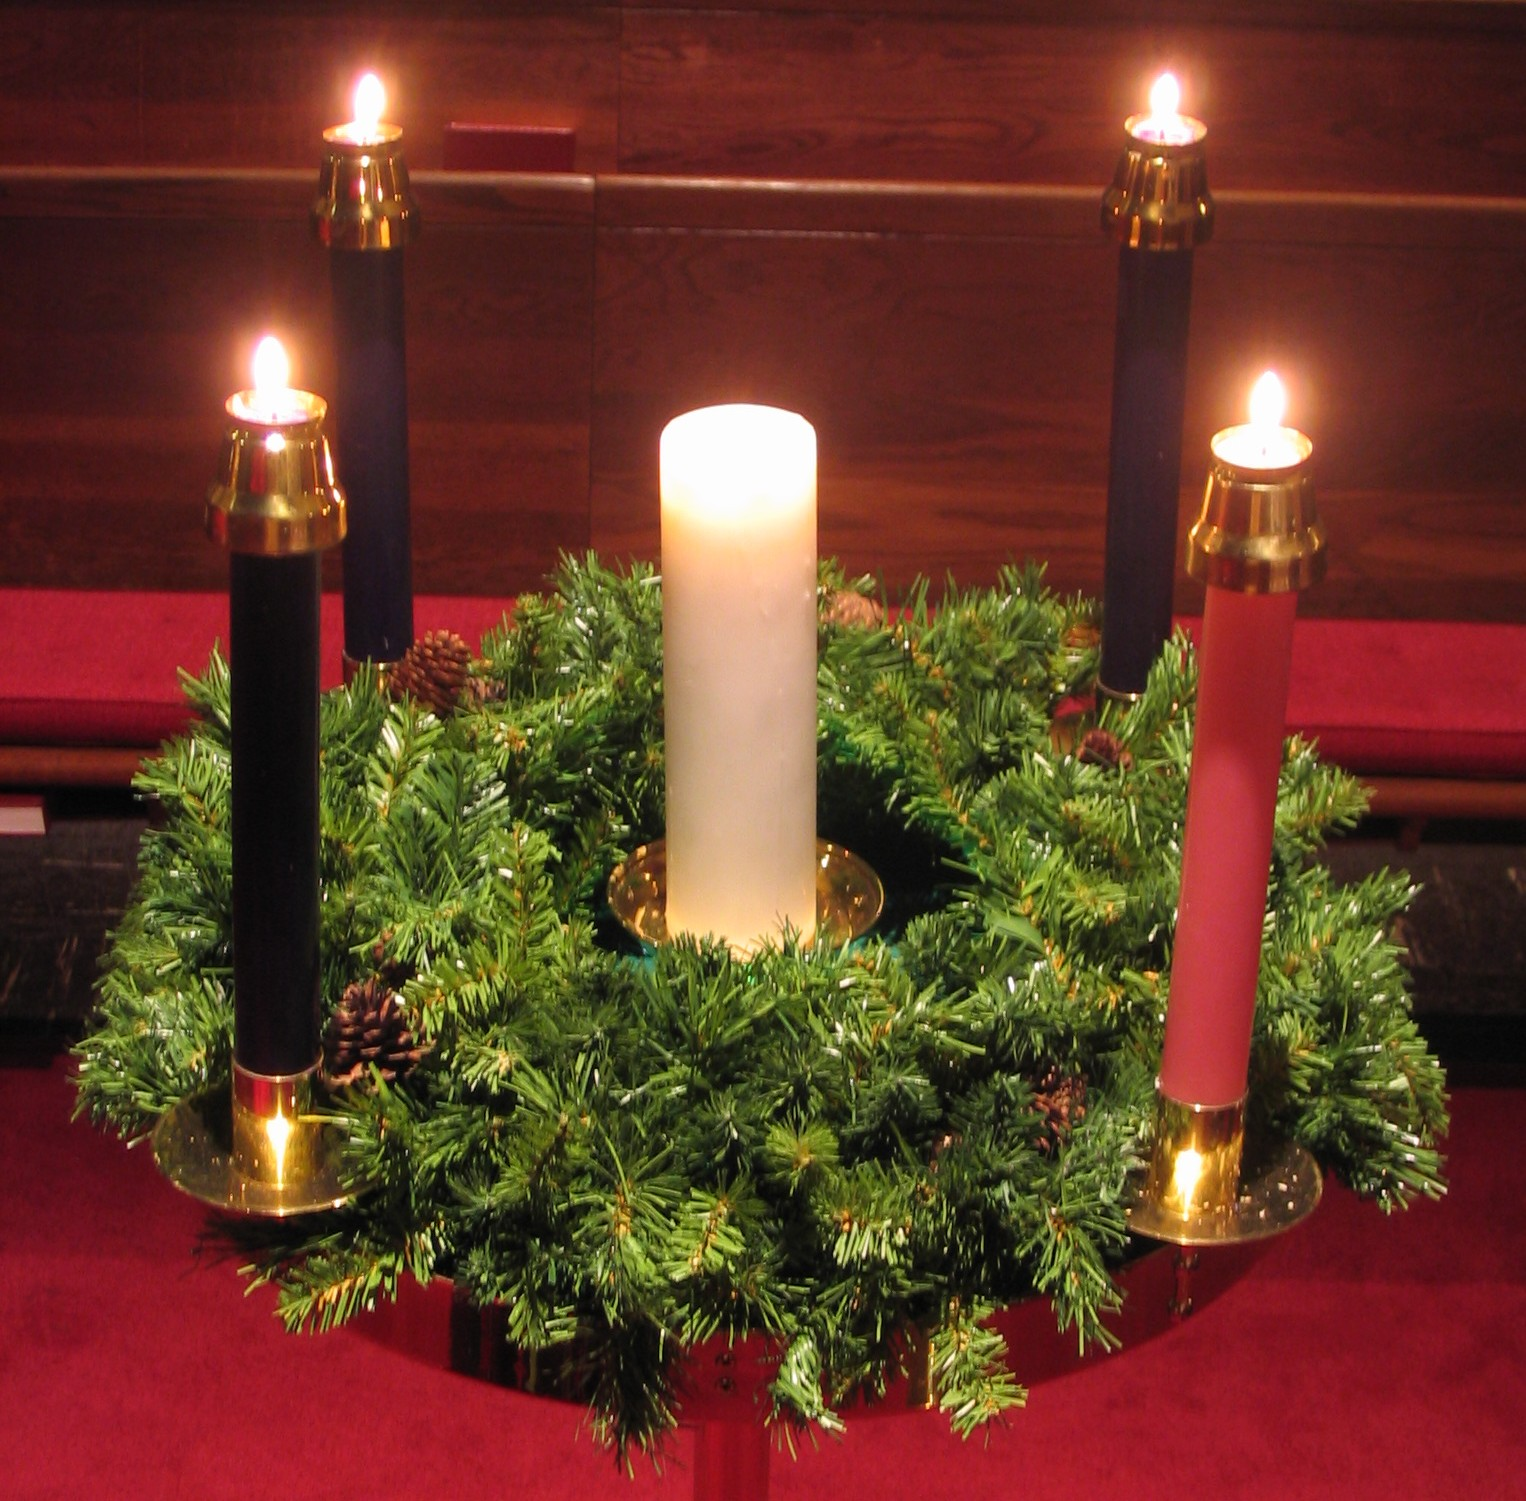 An Advent wreath, with four lit candles, and a fifth white candle in the center